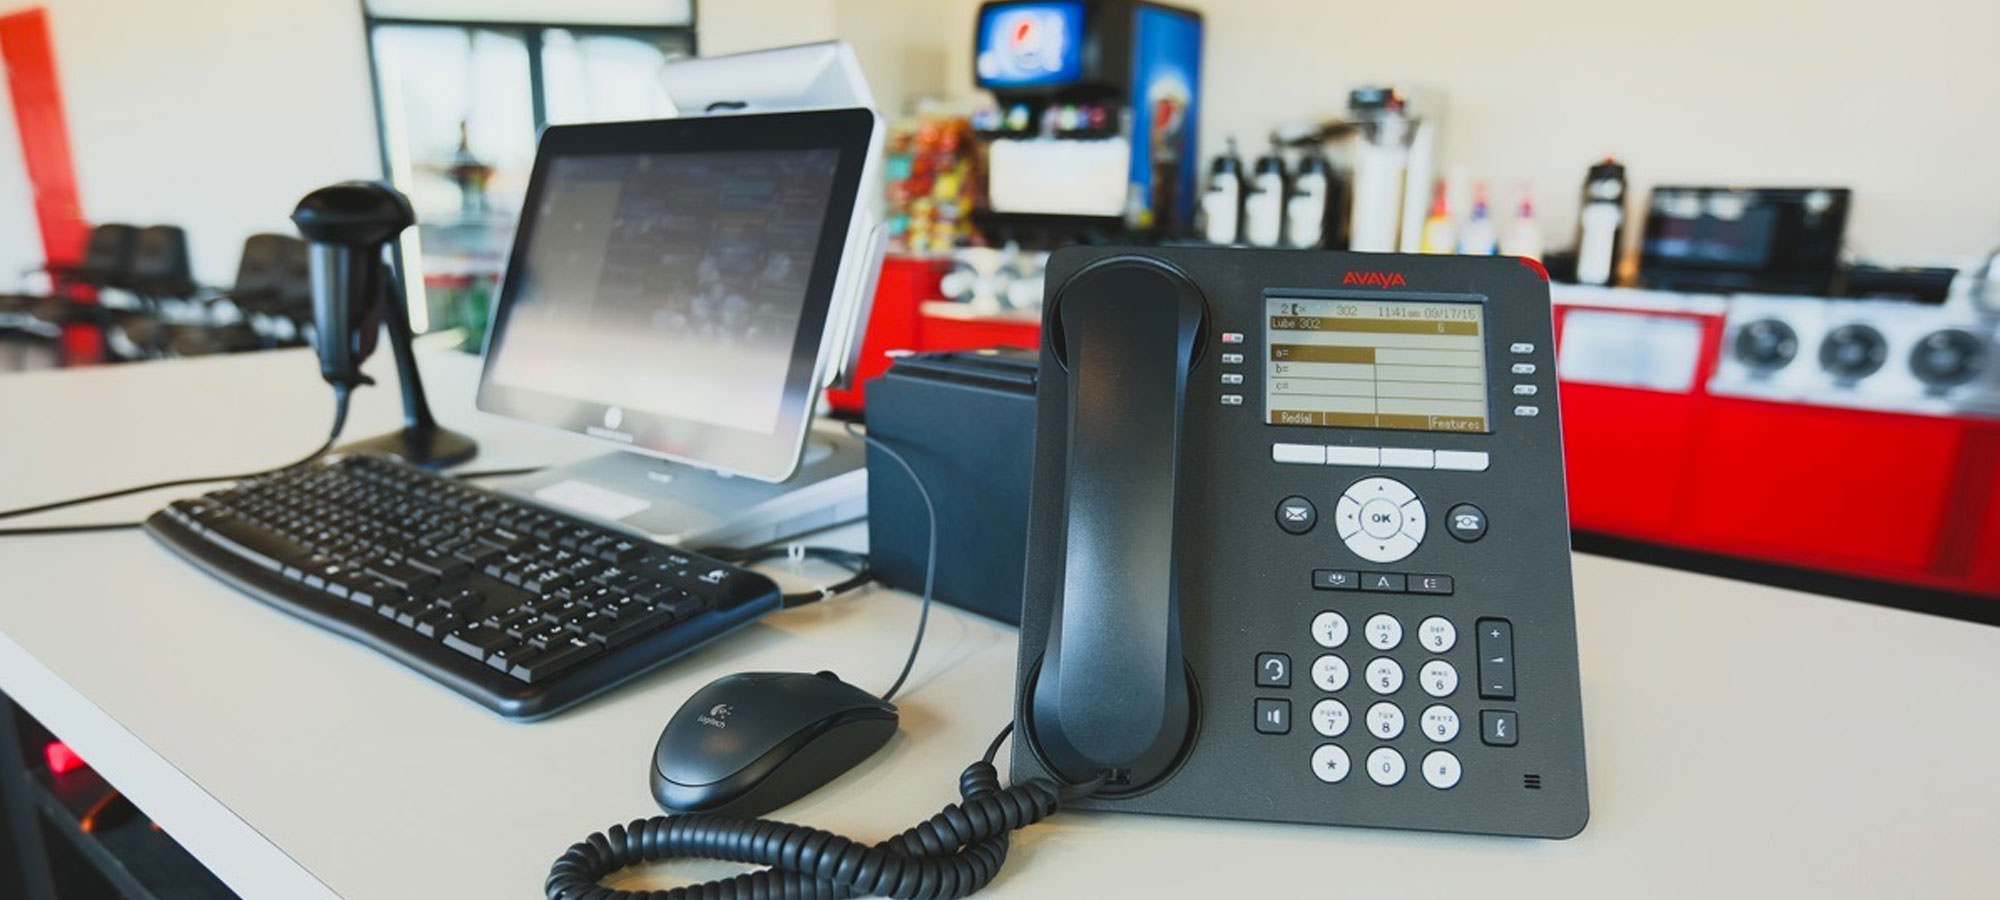 Have Your Business Communicate More Effectively with Avaya Phone Systems